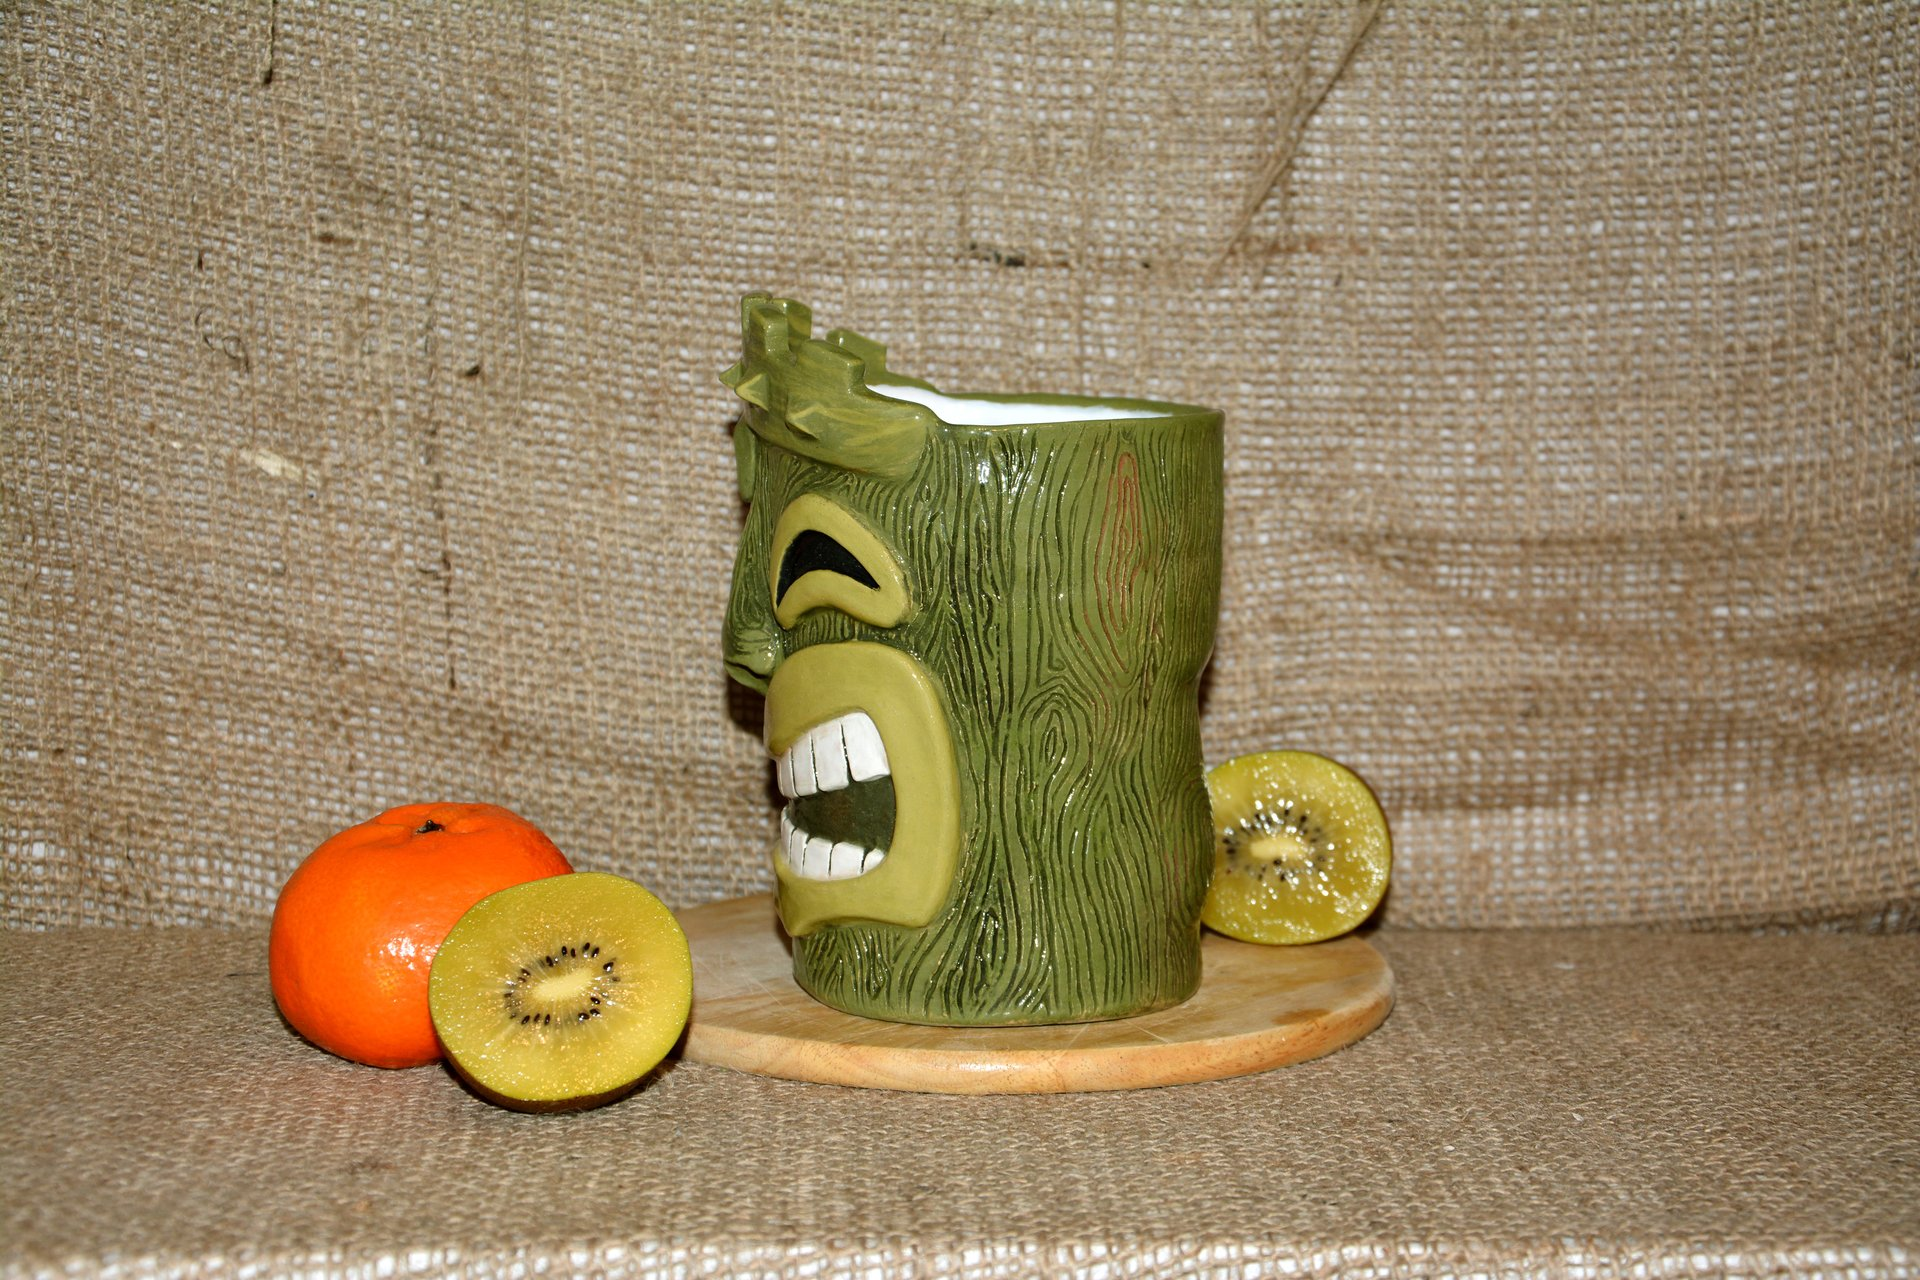 Huge Tiki Glass, color- green, height - 14 cm, volume - 0,7 l, photo 2 of 5.